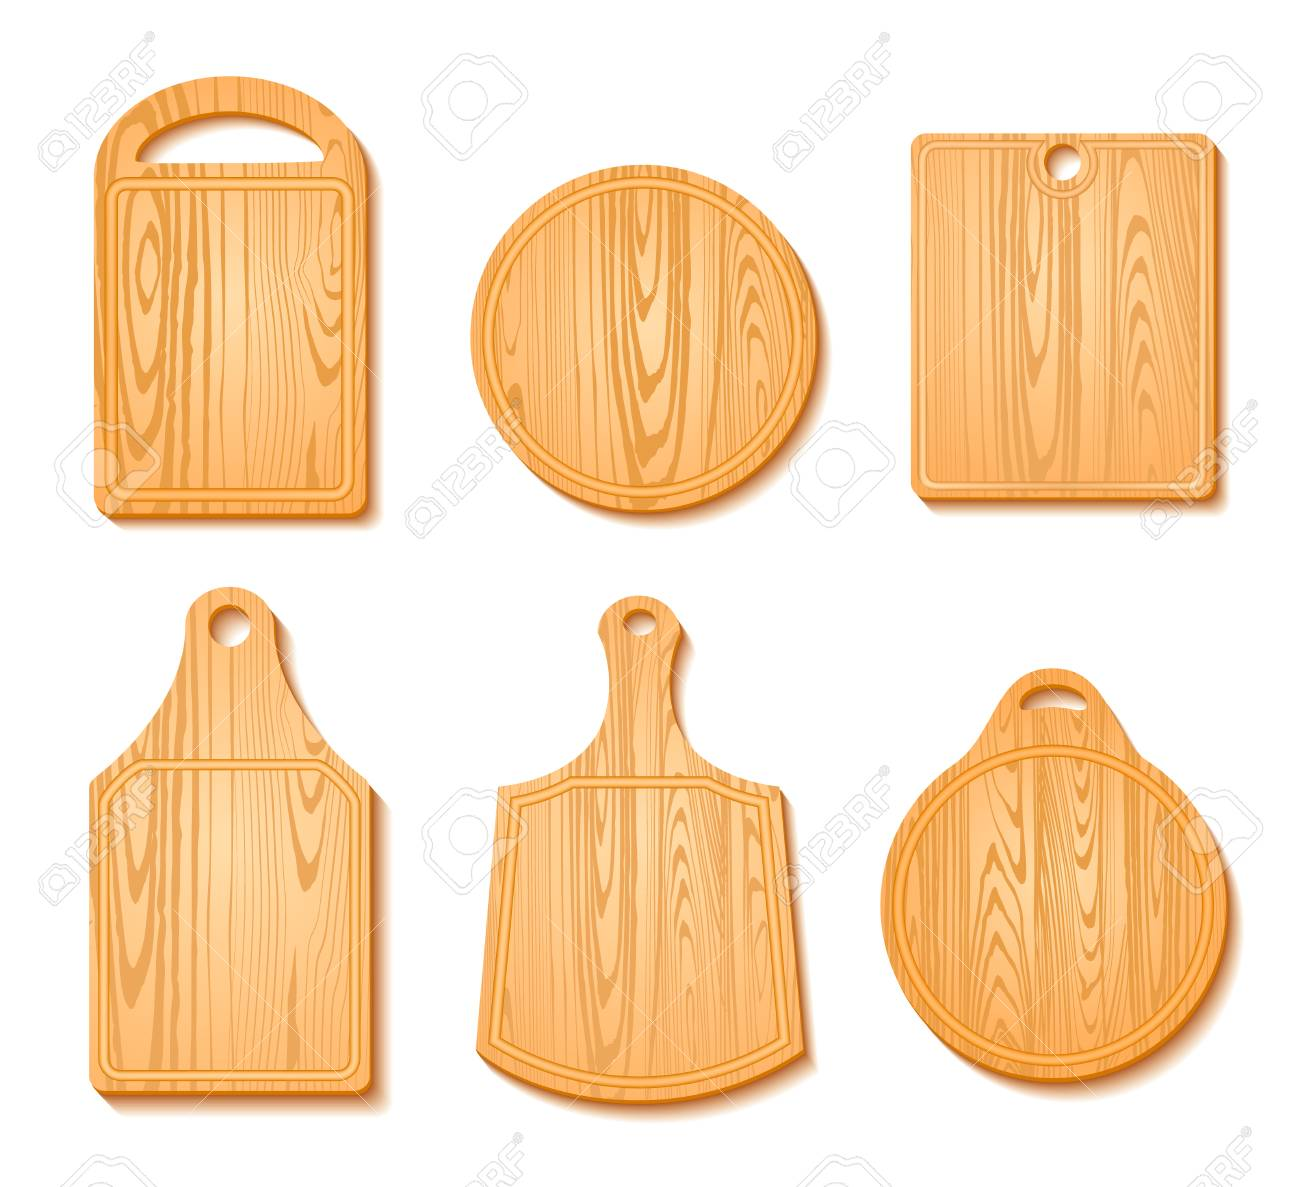 Cutting Board Icon Set In Different Shapes Wooden Isolated On Royalty Free Cliparts Vectors And Stock Illustration Image 65707649